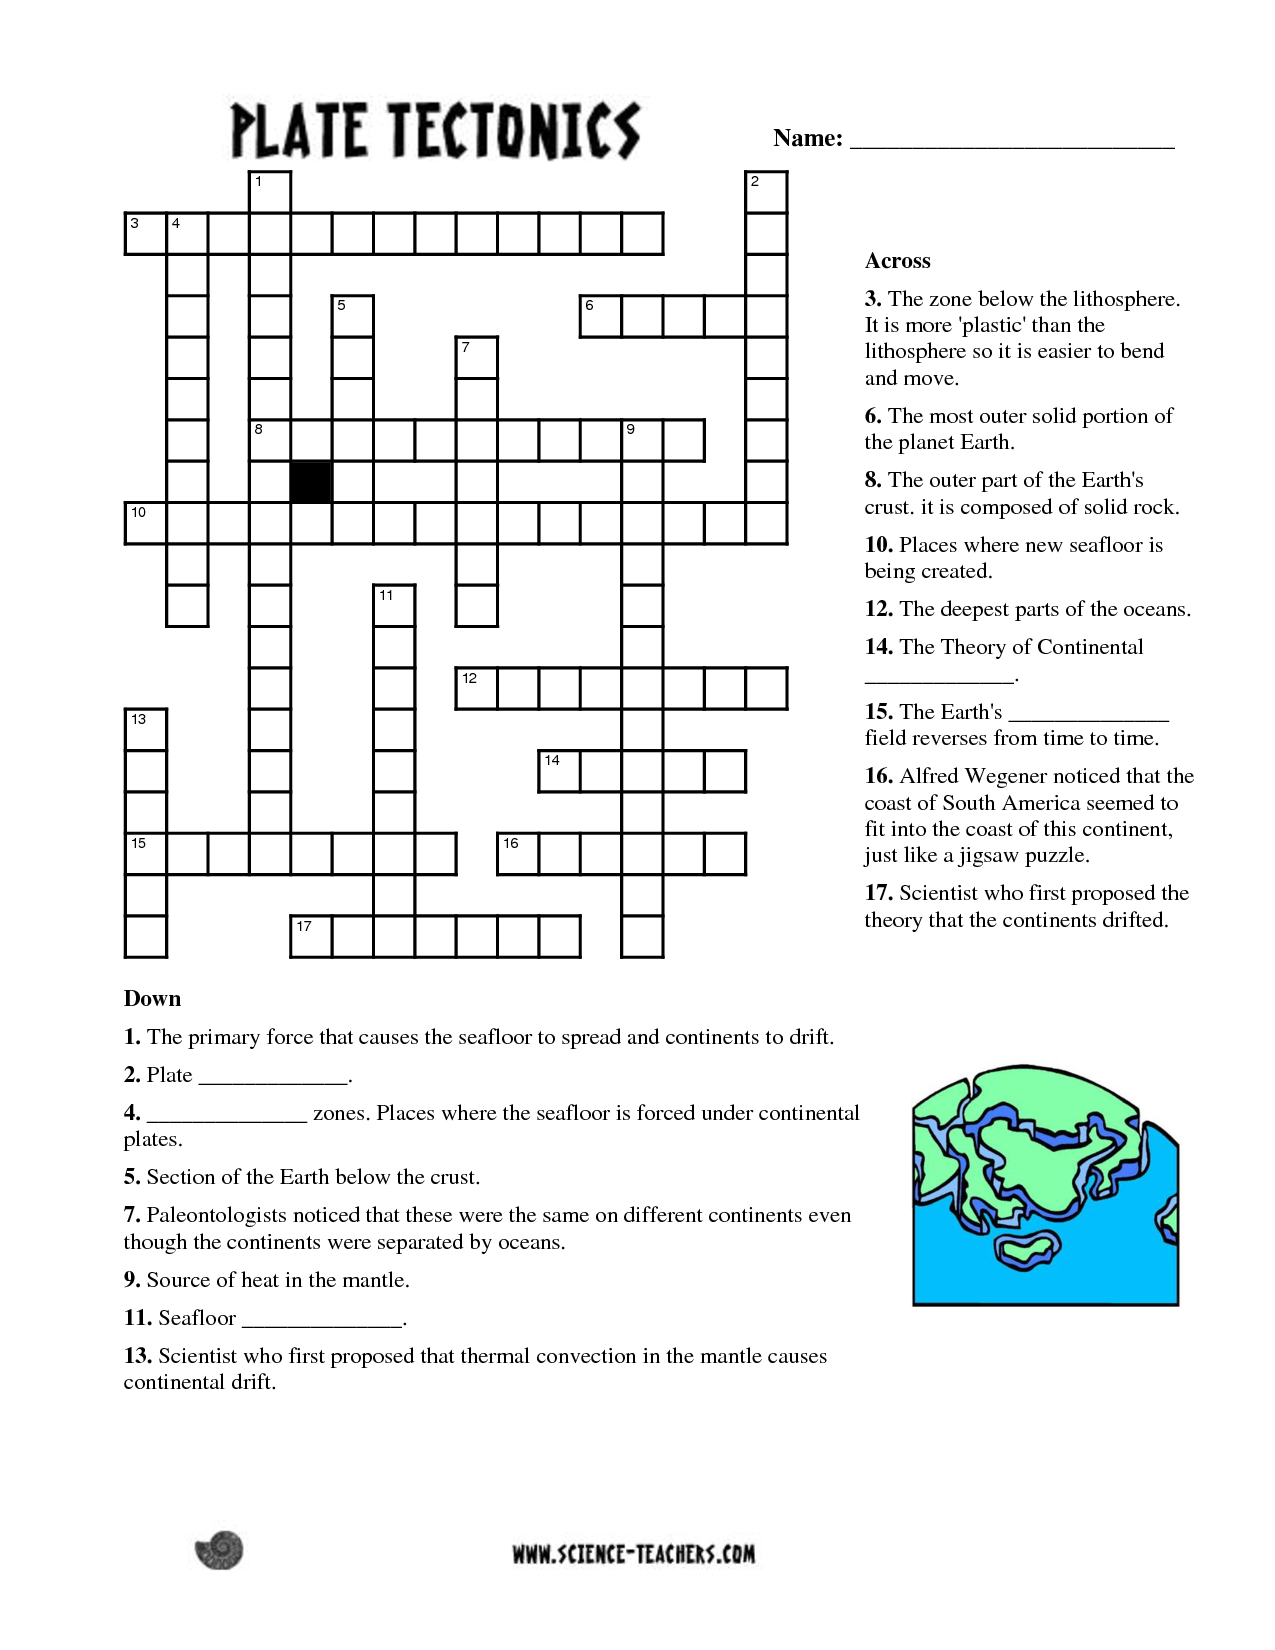 image regarding Science Crossword Puzzles Printable named Science Crossword Puzzles Printable With Solutions Printable